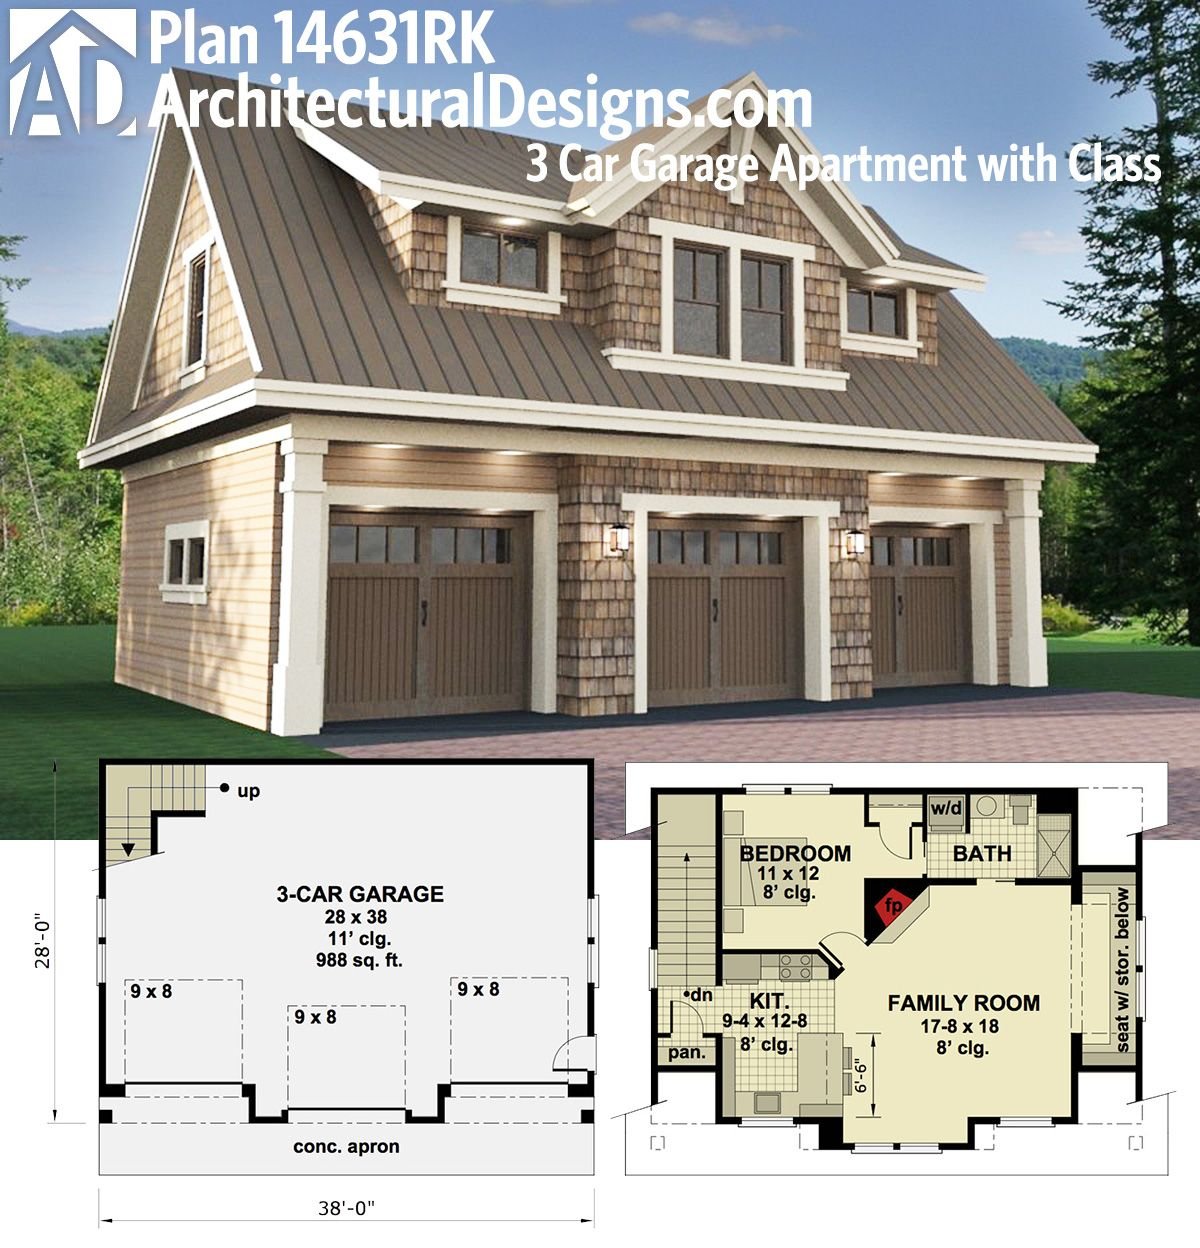 Architectural designs carriage house plan 14631rk gives for 3 bedroom 2 bath garage apartment plans